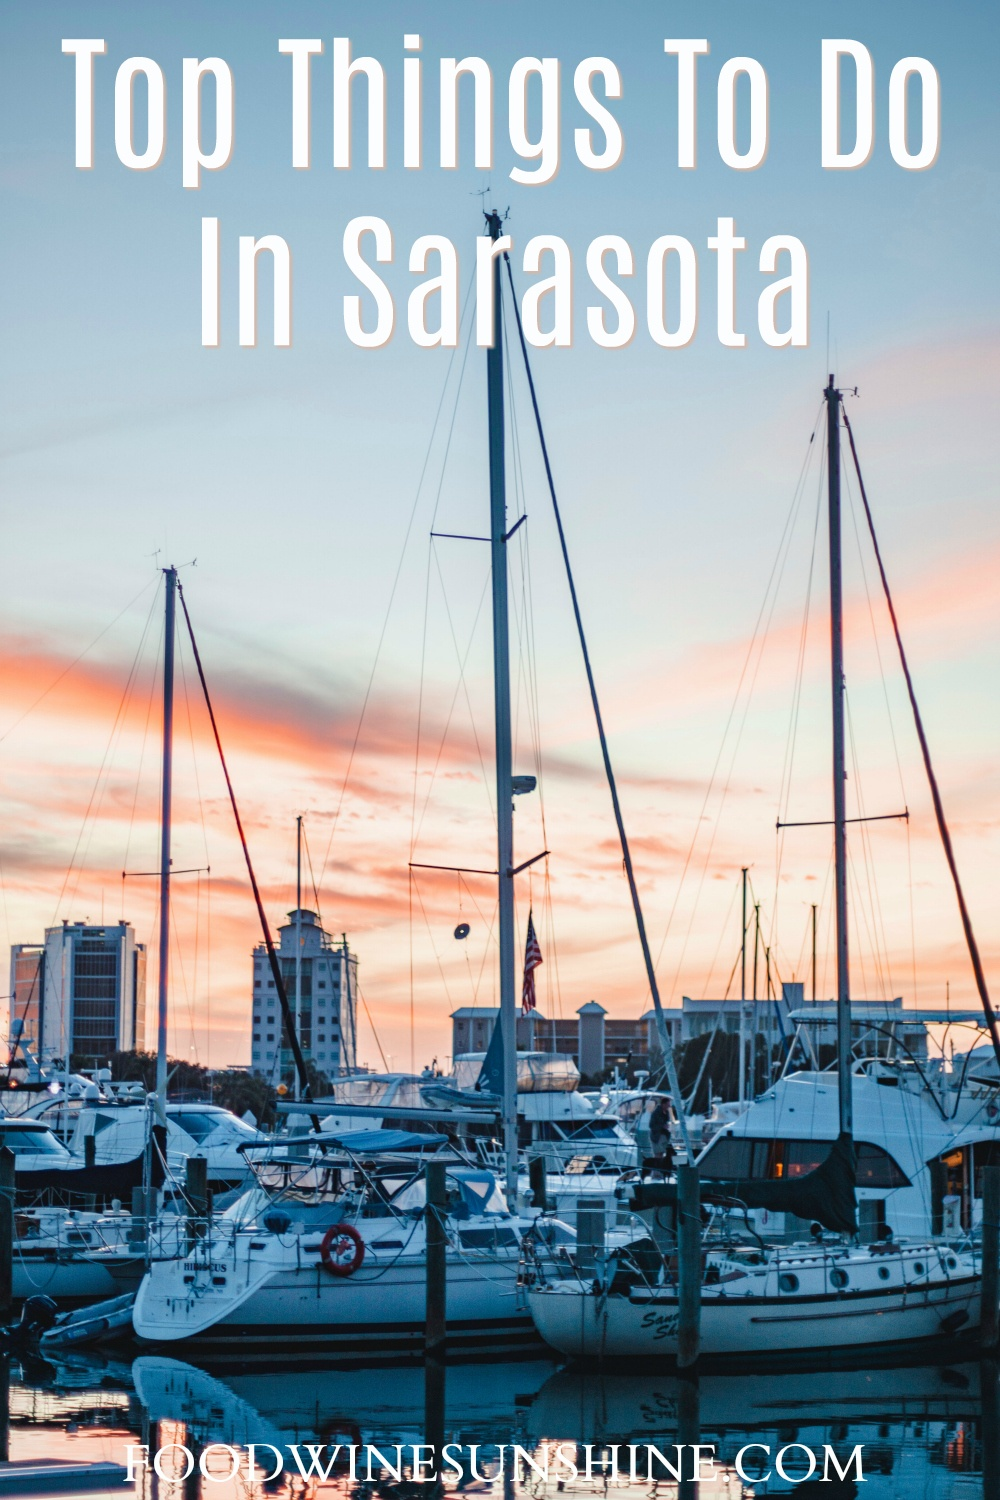 Top Things To Do In Sarasota Florida